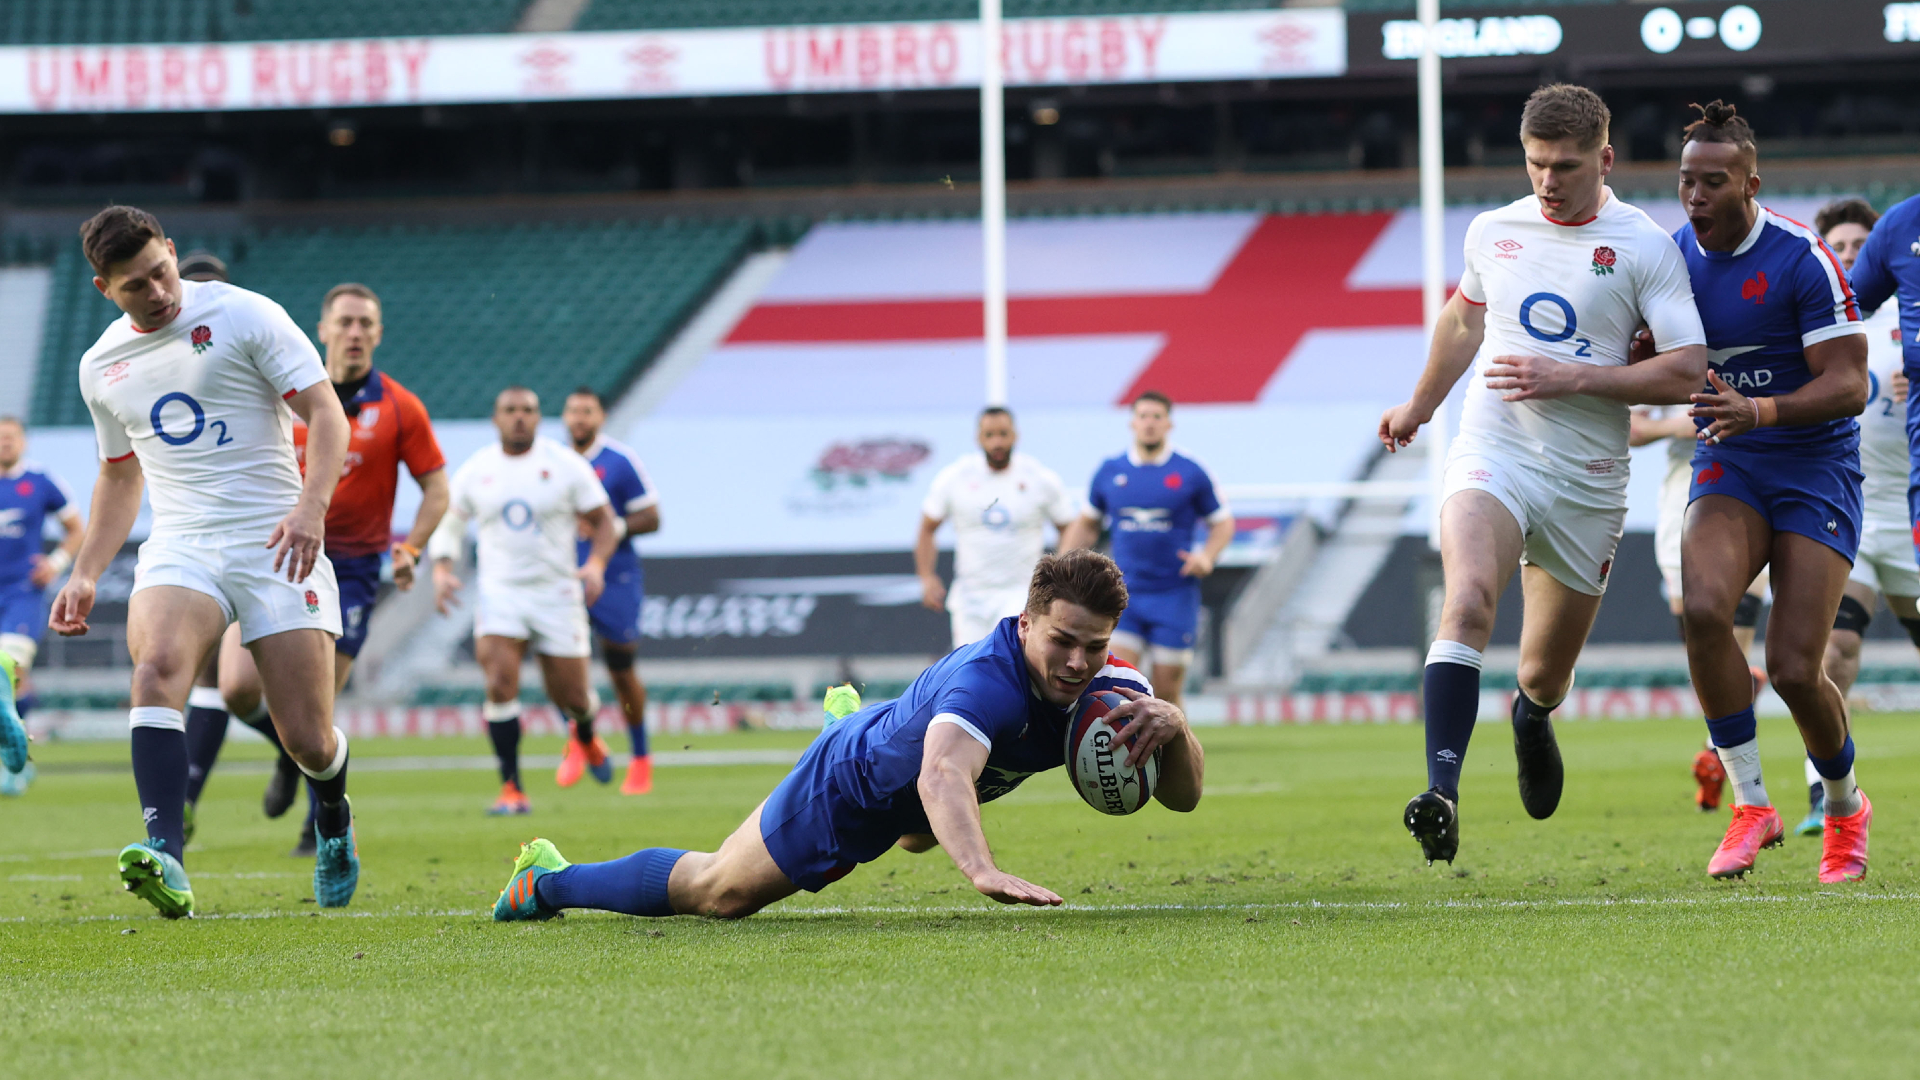 Six Nations 2021: France empty-handed after Twickenham thriller but future looks bright for Les Bleus